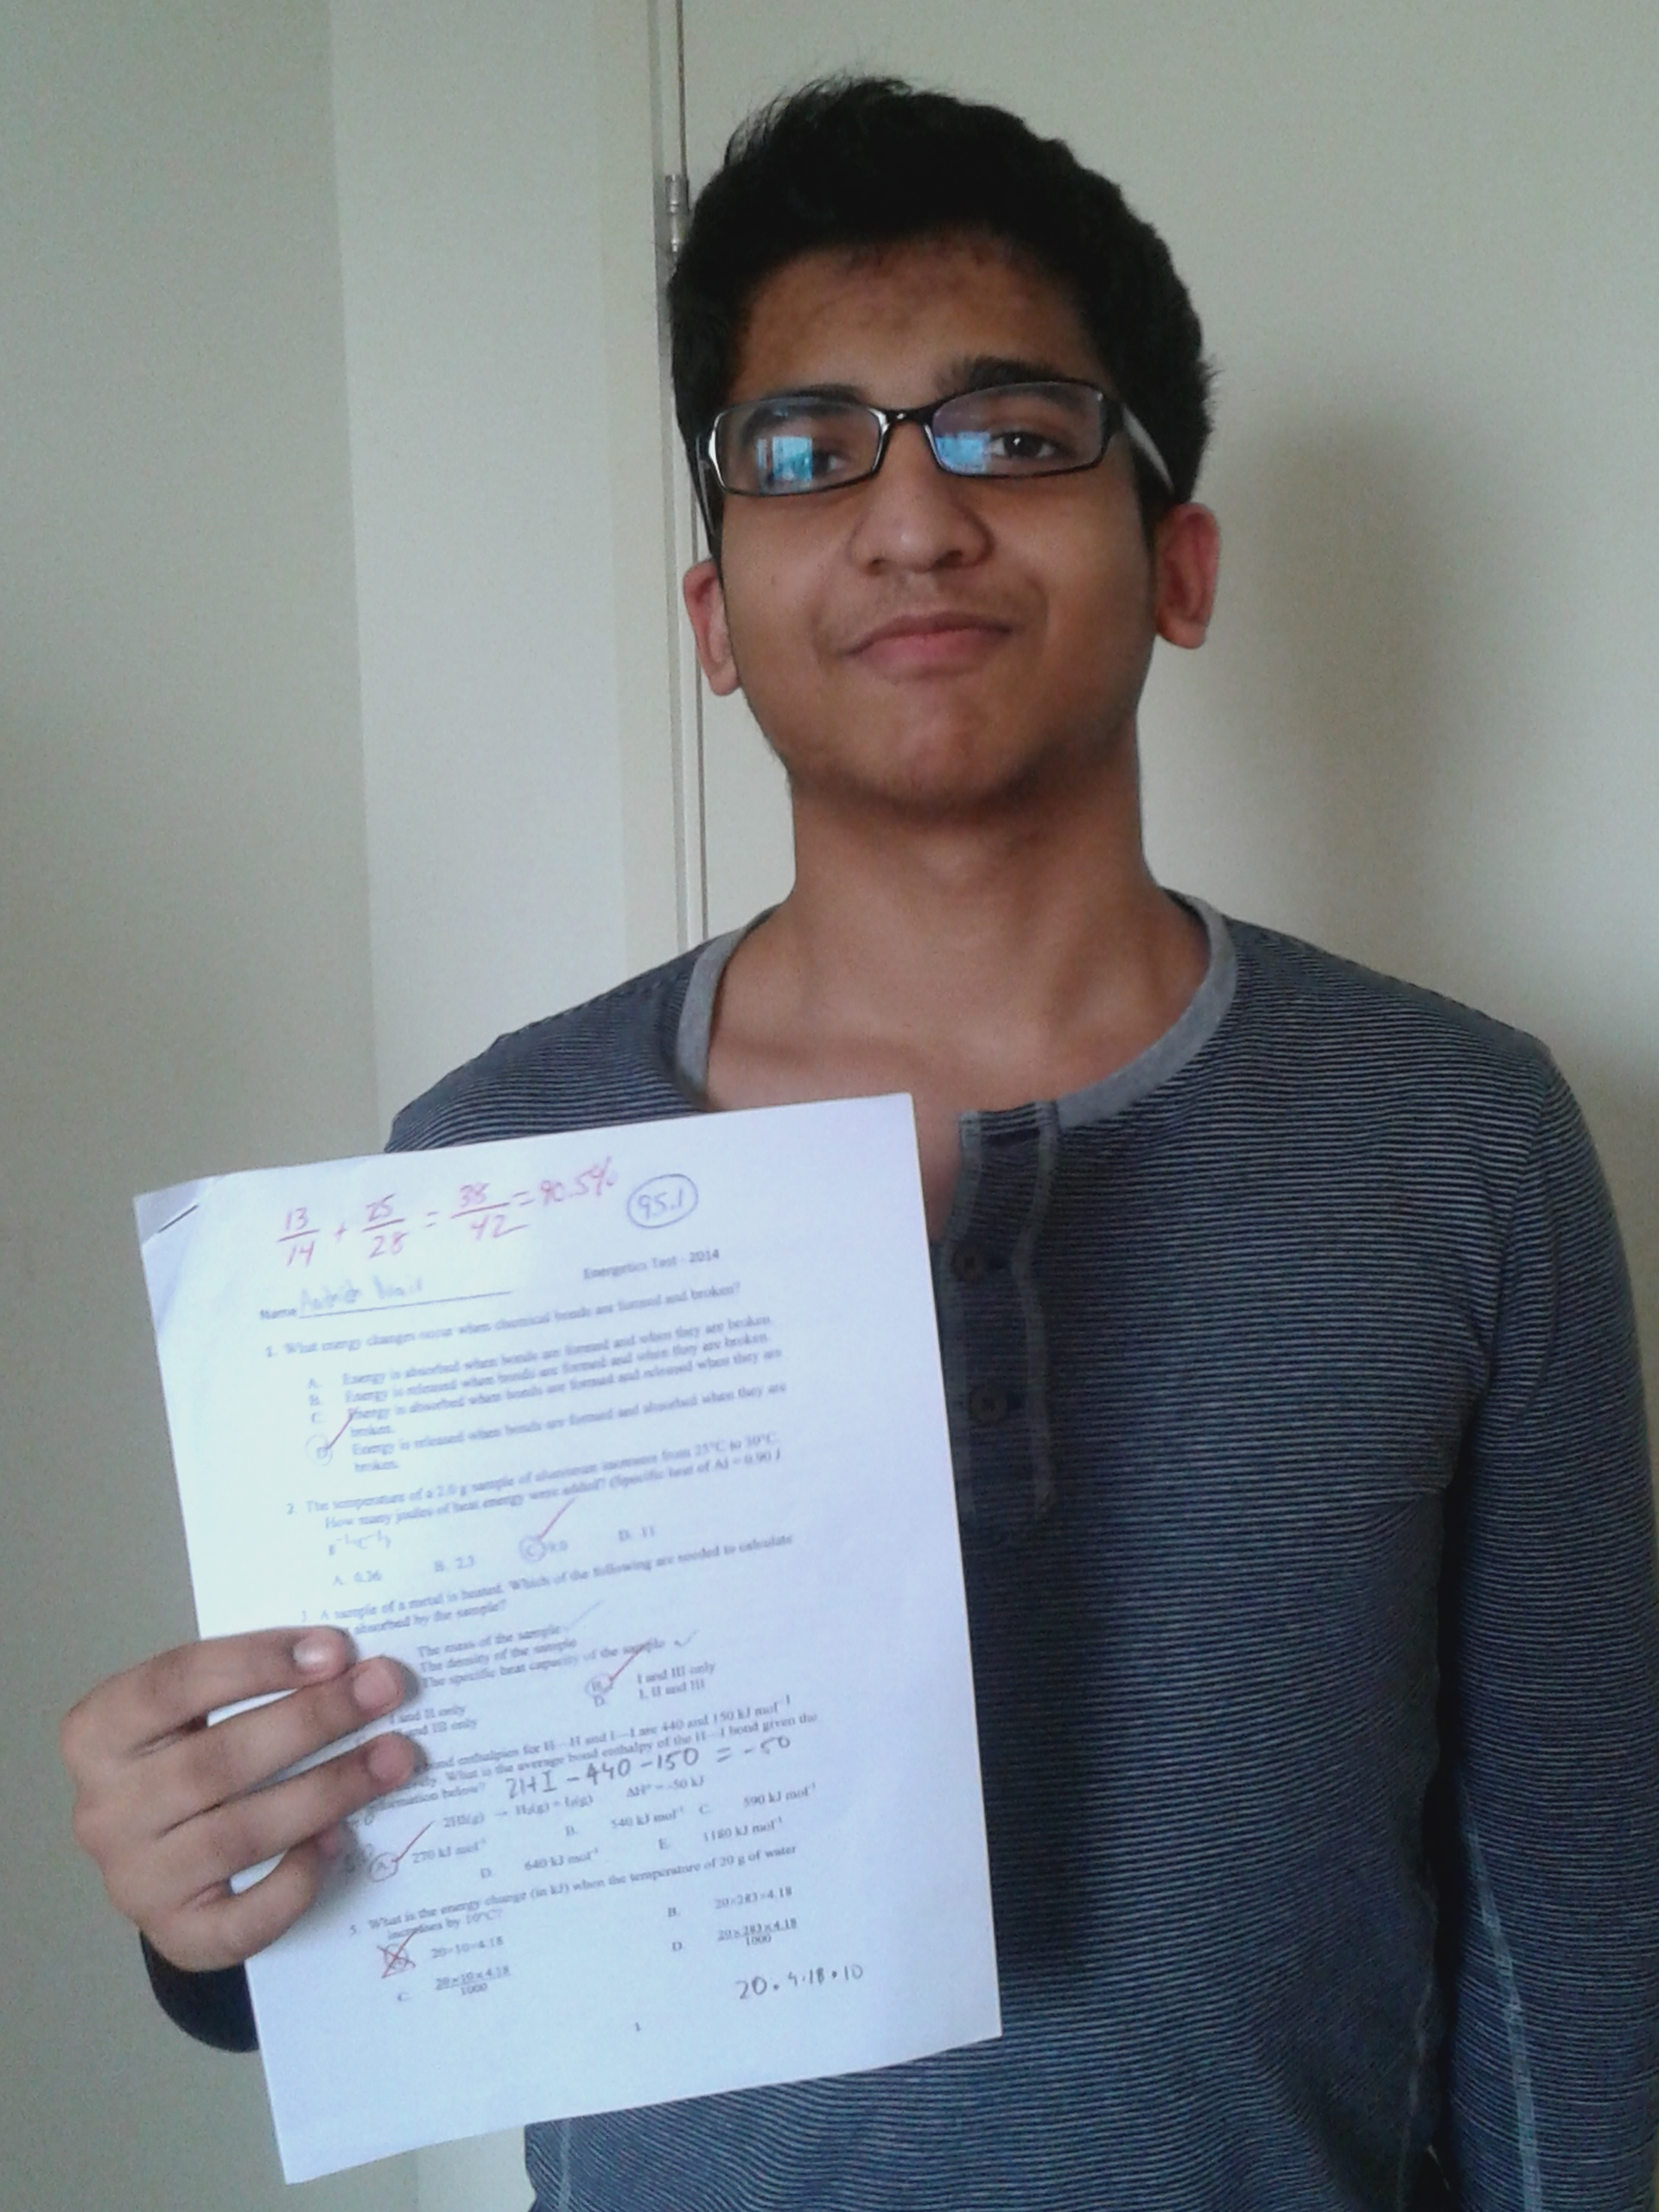 Aashish Nair getting a 90%!